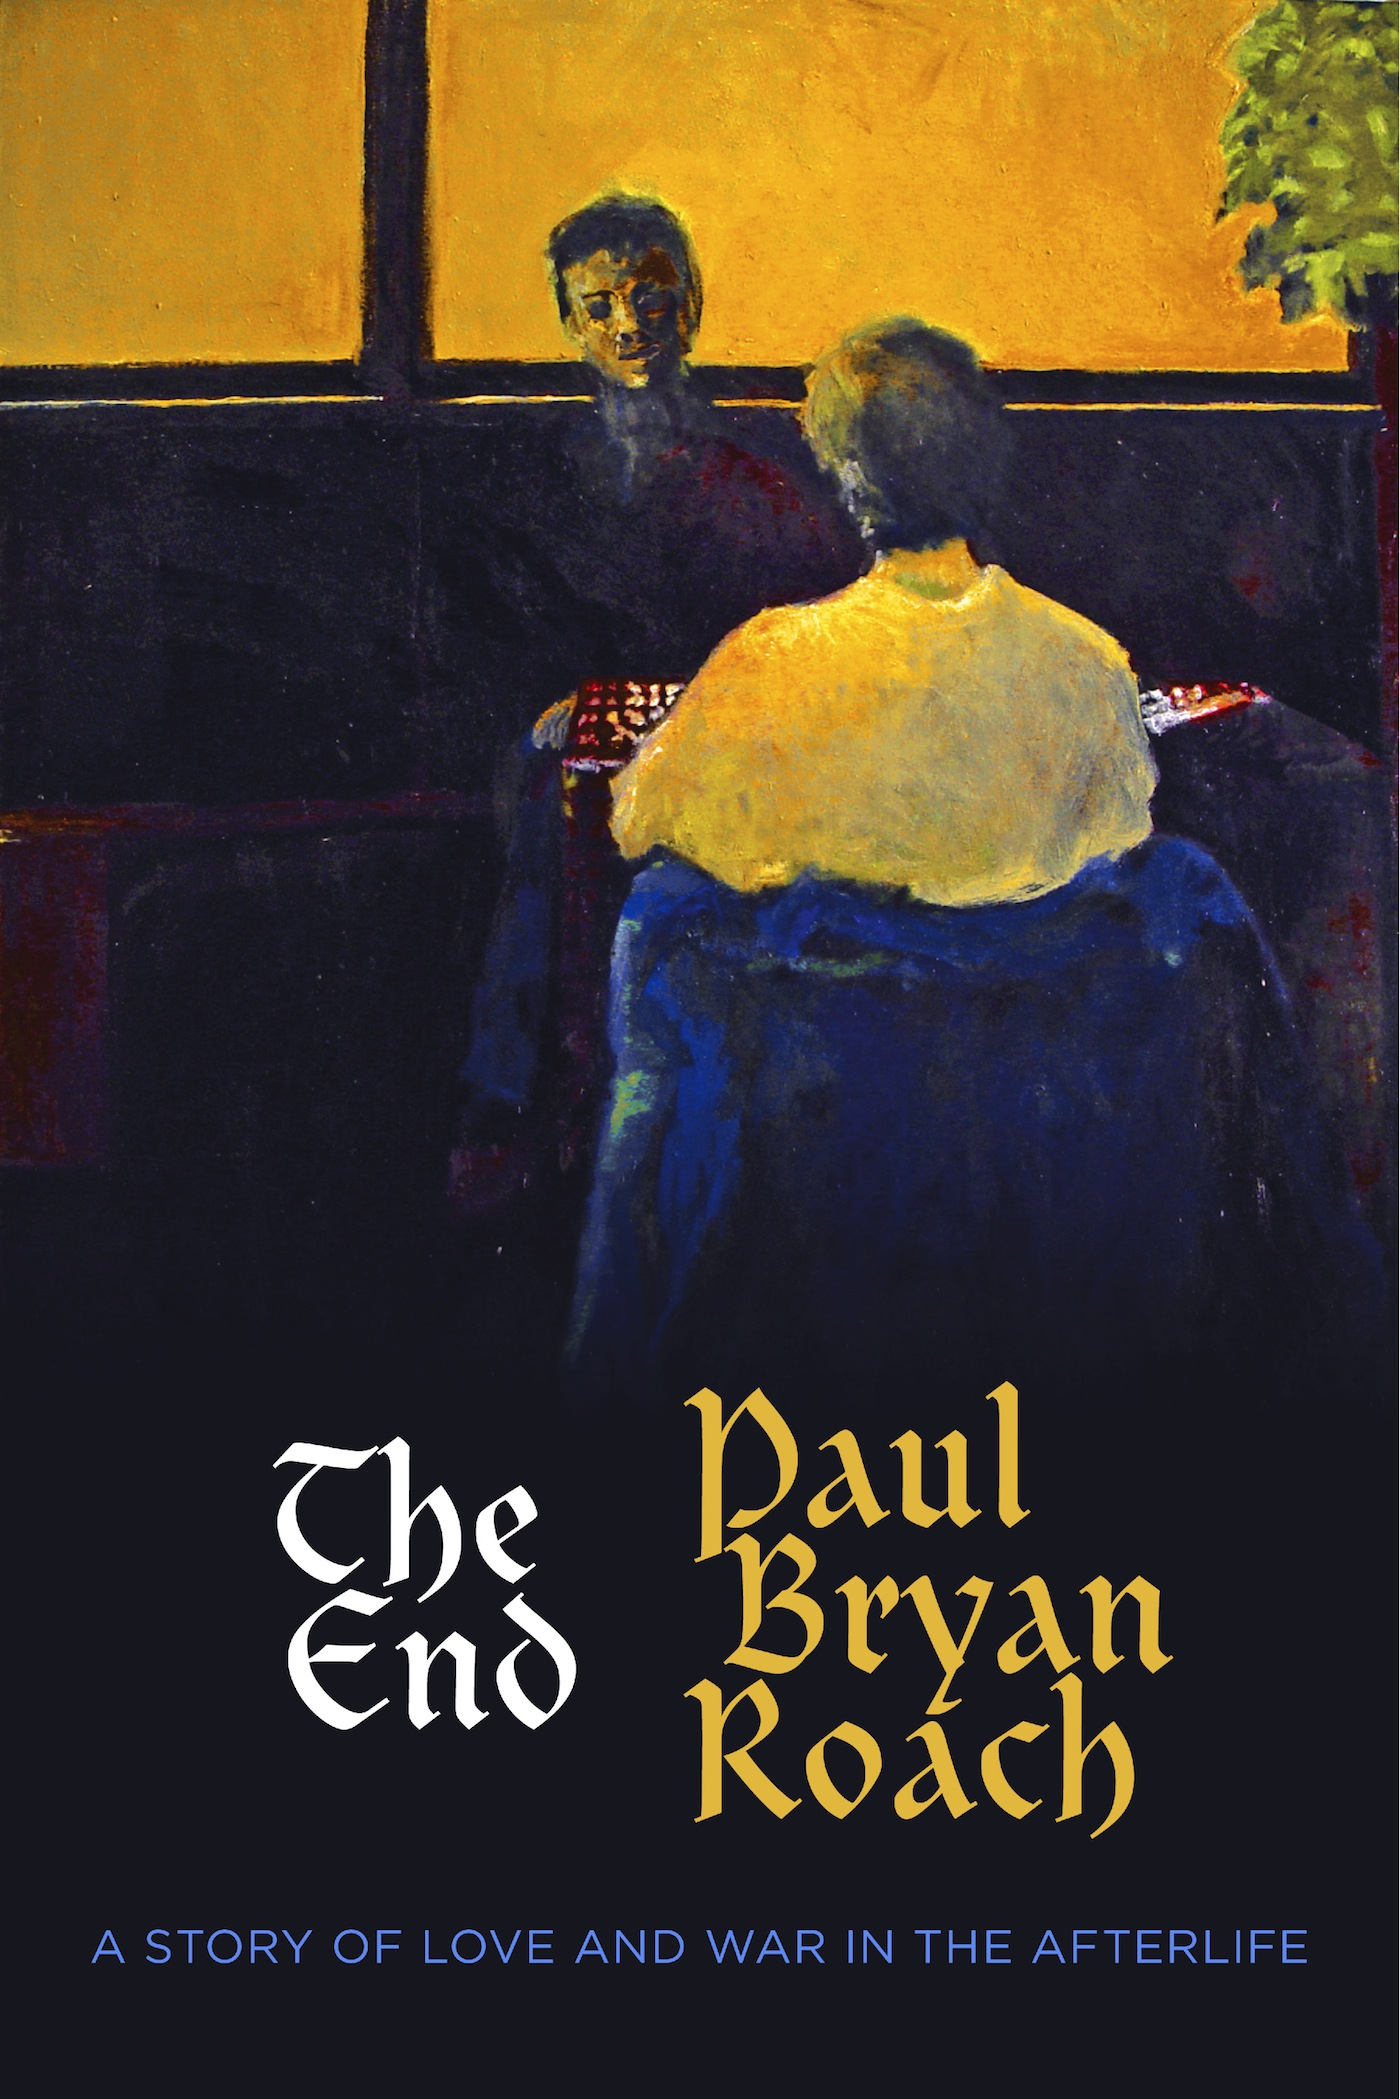 The End: A Story of Love and War in the Afterlife